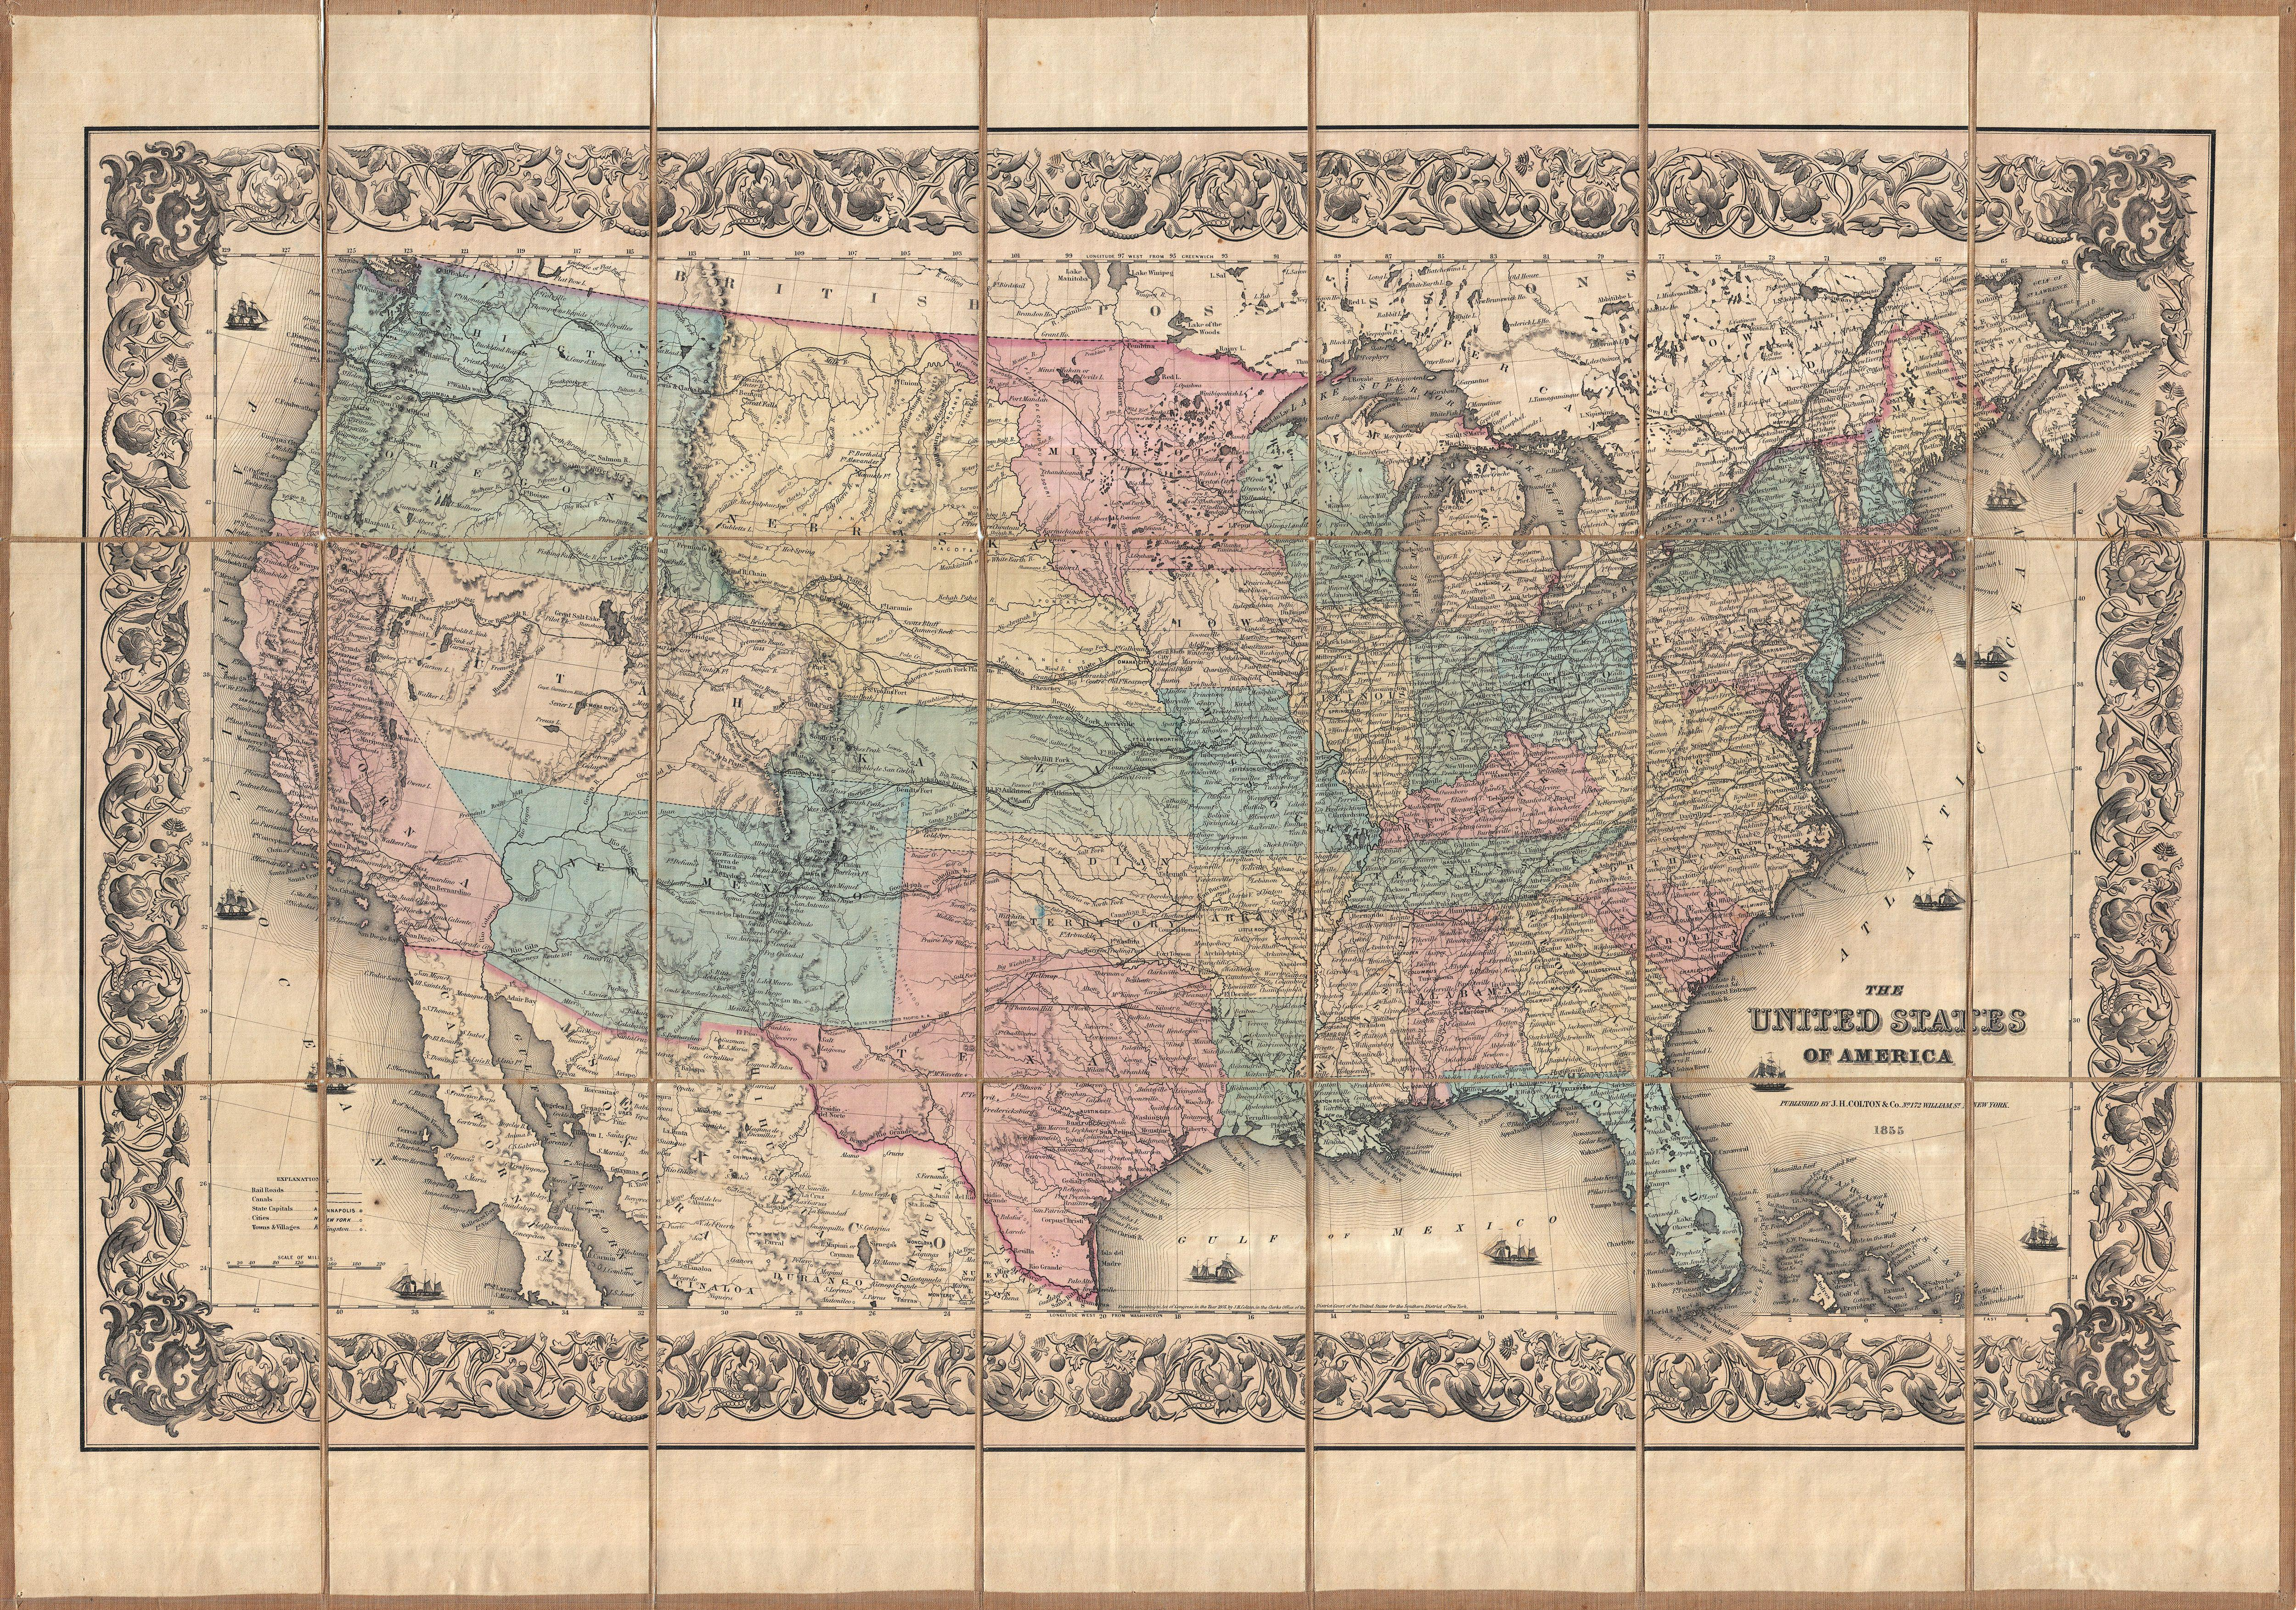 File:1855 Colton Pocket Map of the United States - Geographicus -  UnitedStatesPk-colton